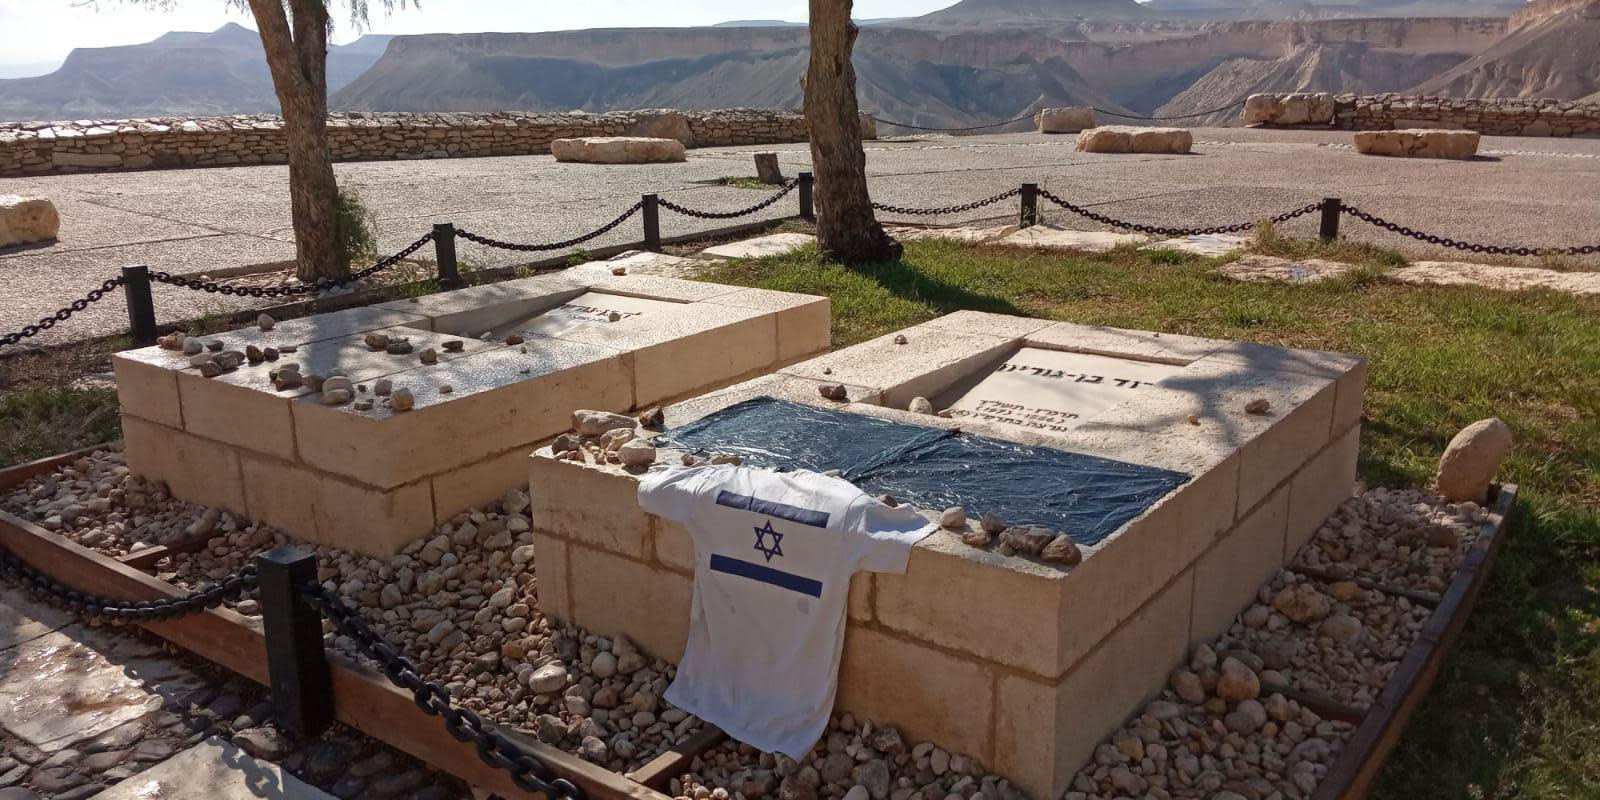 Black flag in protest of Prime Minister Benjamin Netanyahu placed on the grave of Israel's first prime minister, David Ben-Gurion, March 22, 2020 (Photo Credit: Protest Organizers)